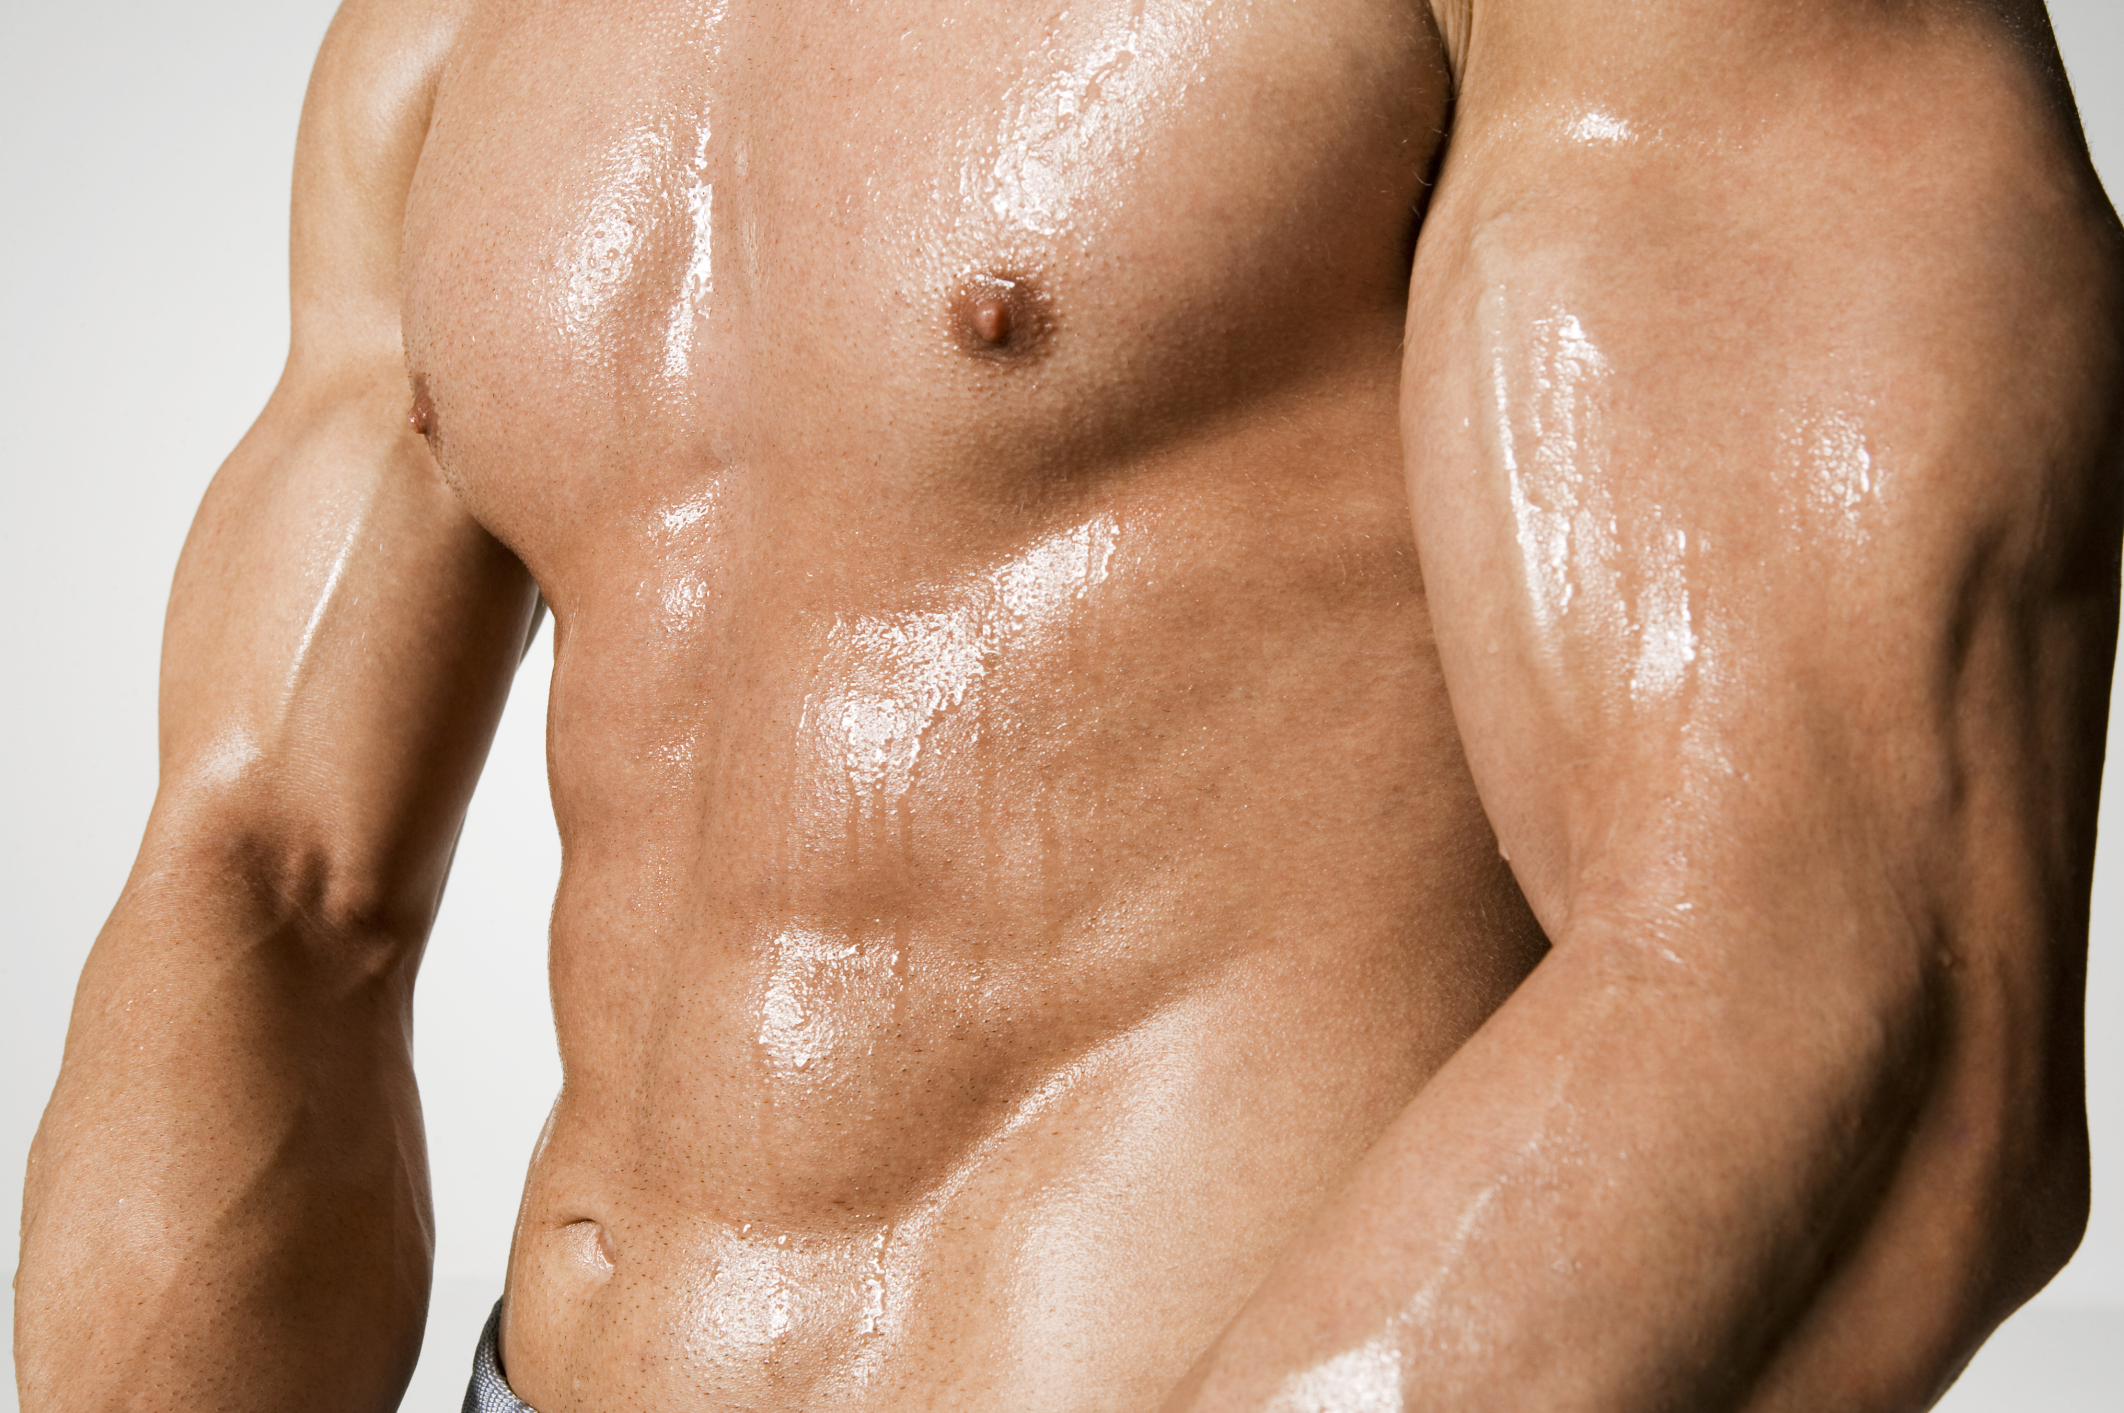 Build muscle with the right diet and exercise program.